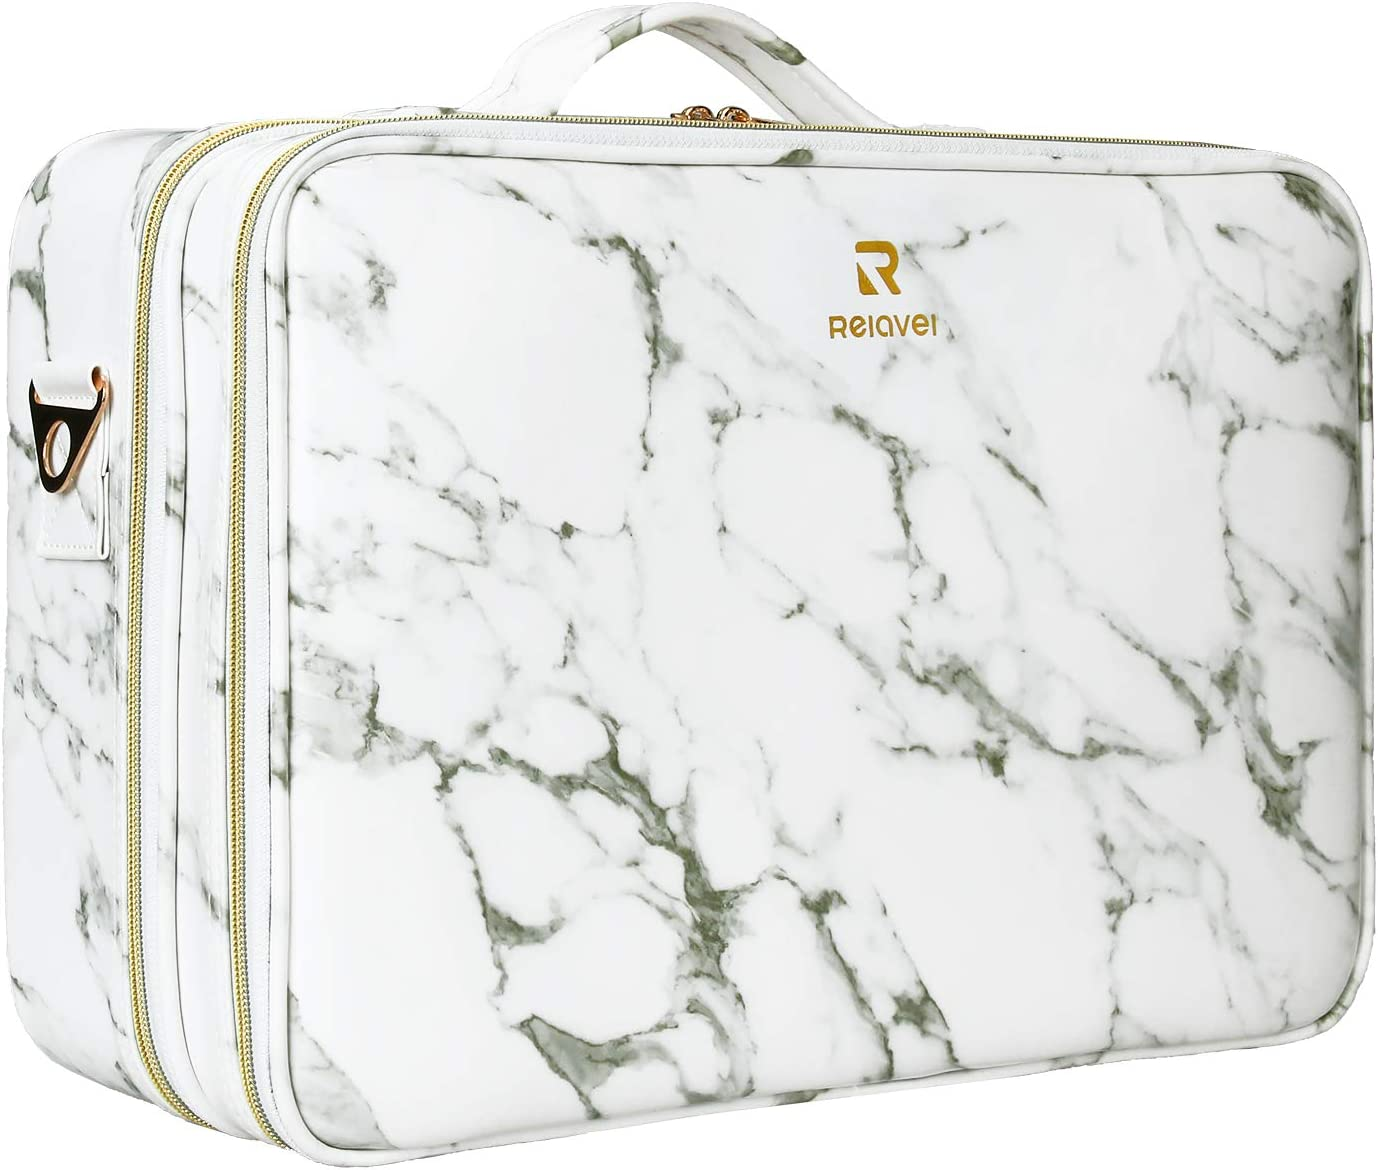 MONSTINA Makeup Case 3-layer Large Cosmetic Organizer Marble Pattern PU Water-proof Makeup Bag With Adjustable Dividers Makeup Brushes Tools Storage Bag Travel Case